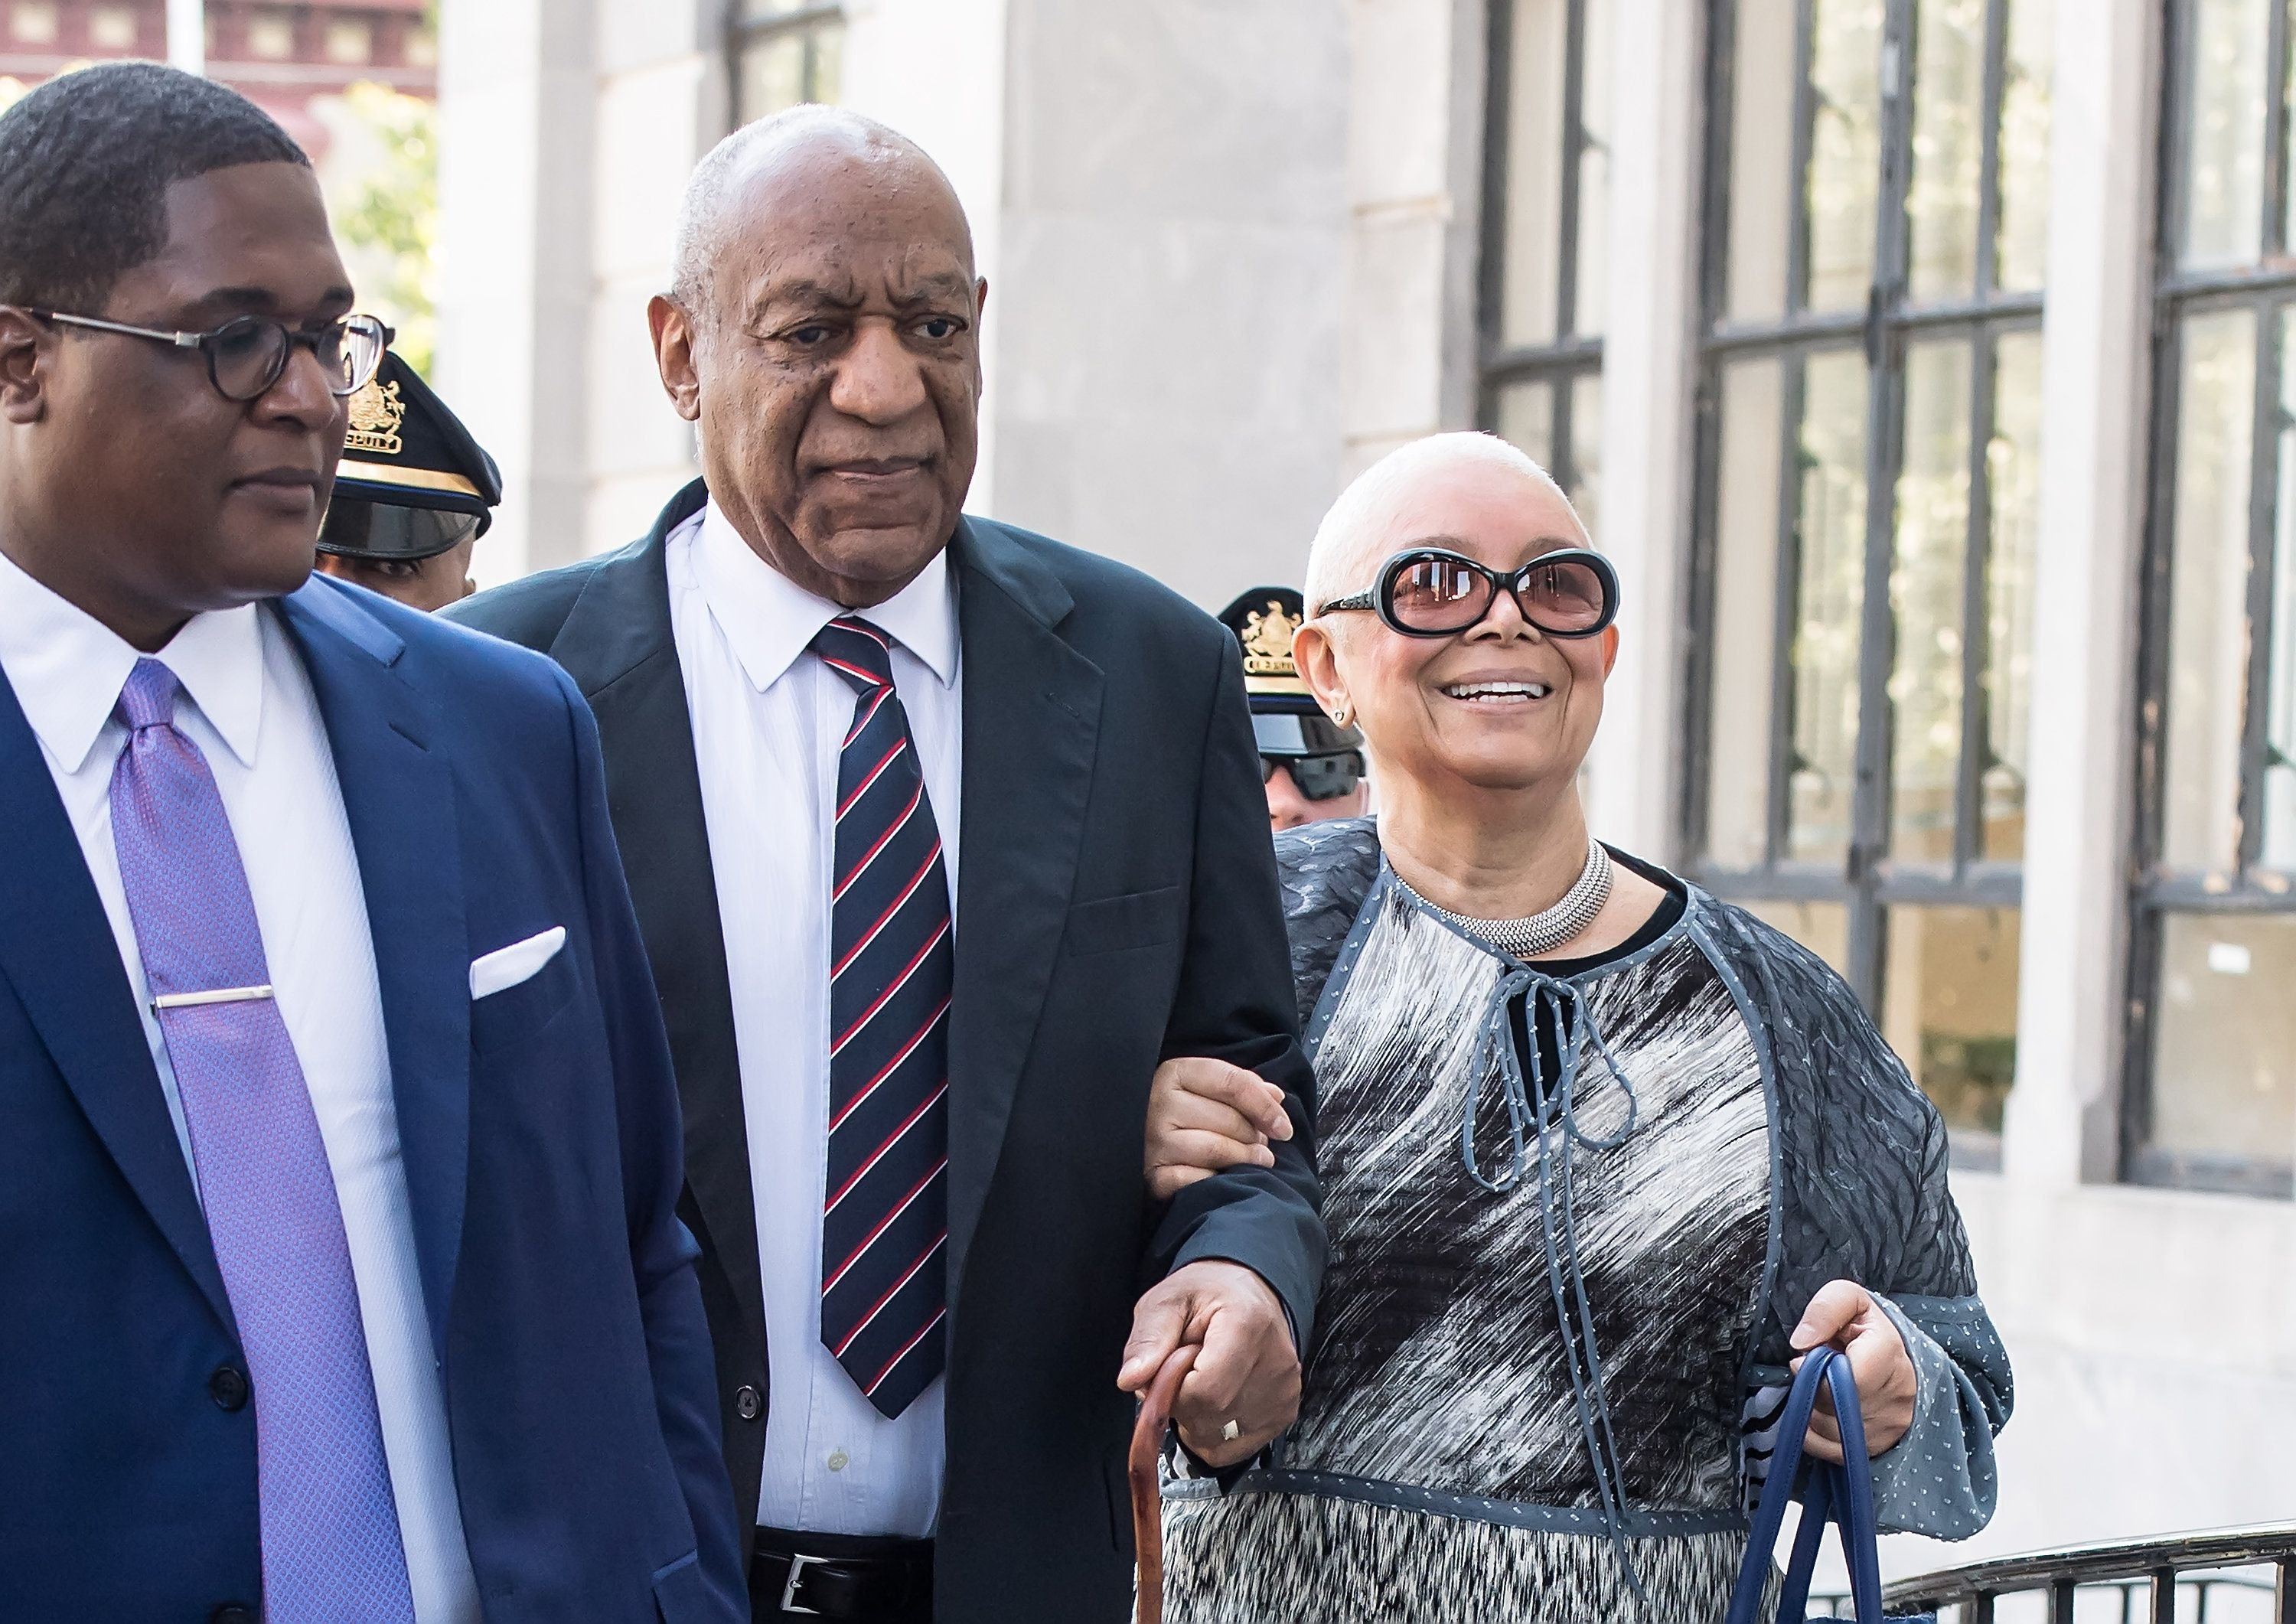 Bill Cosby's Wife Calls Opposing Counsel 'Totally Unethical' After